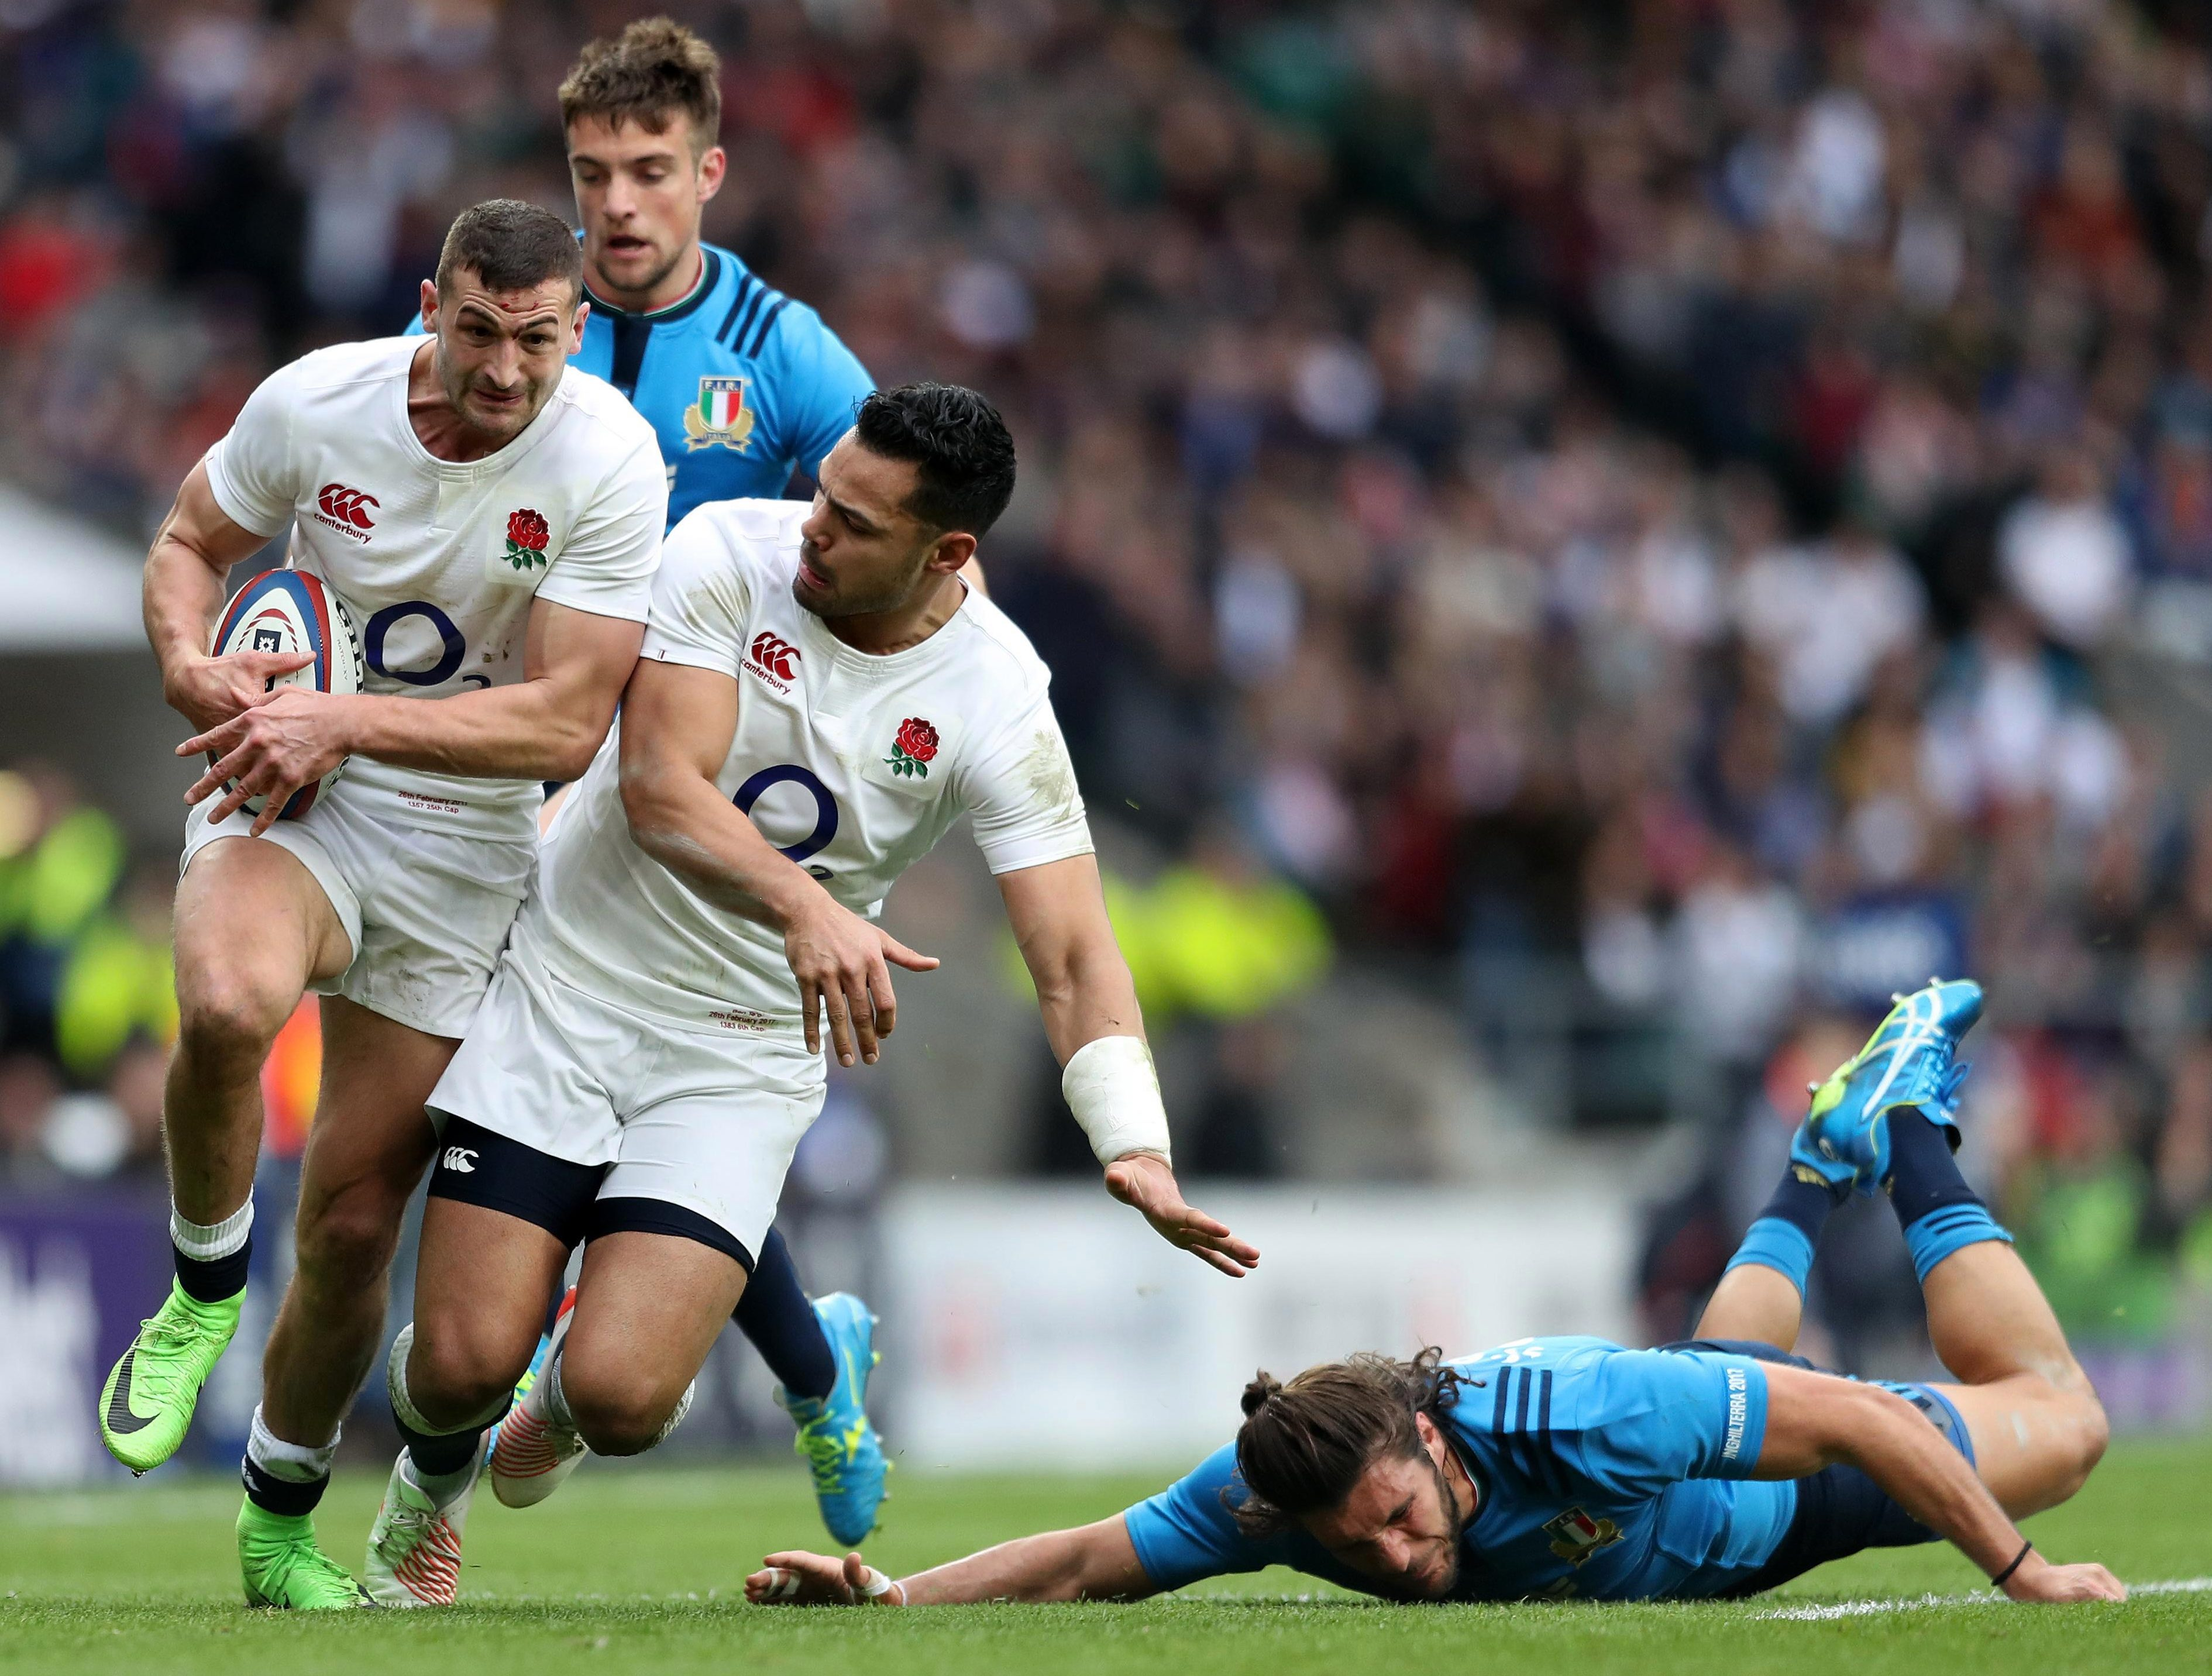 Powerhouse centre Ben Te'o knows an England win at Murrayfield would be a big step towards the Six Nations title